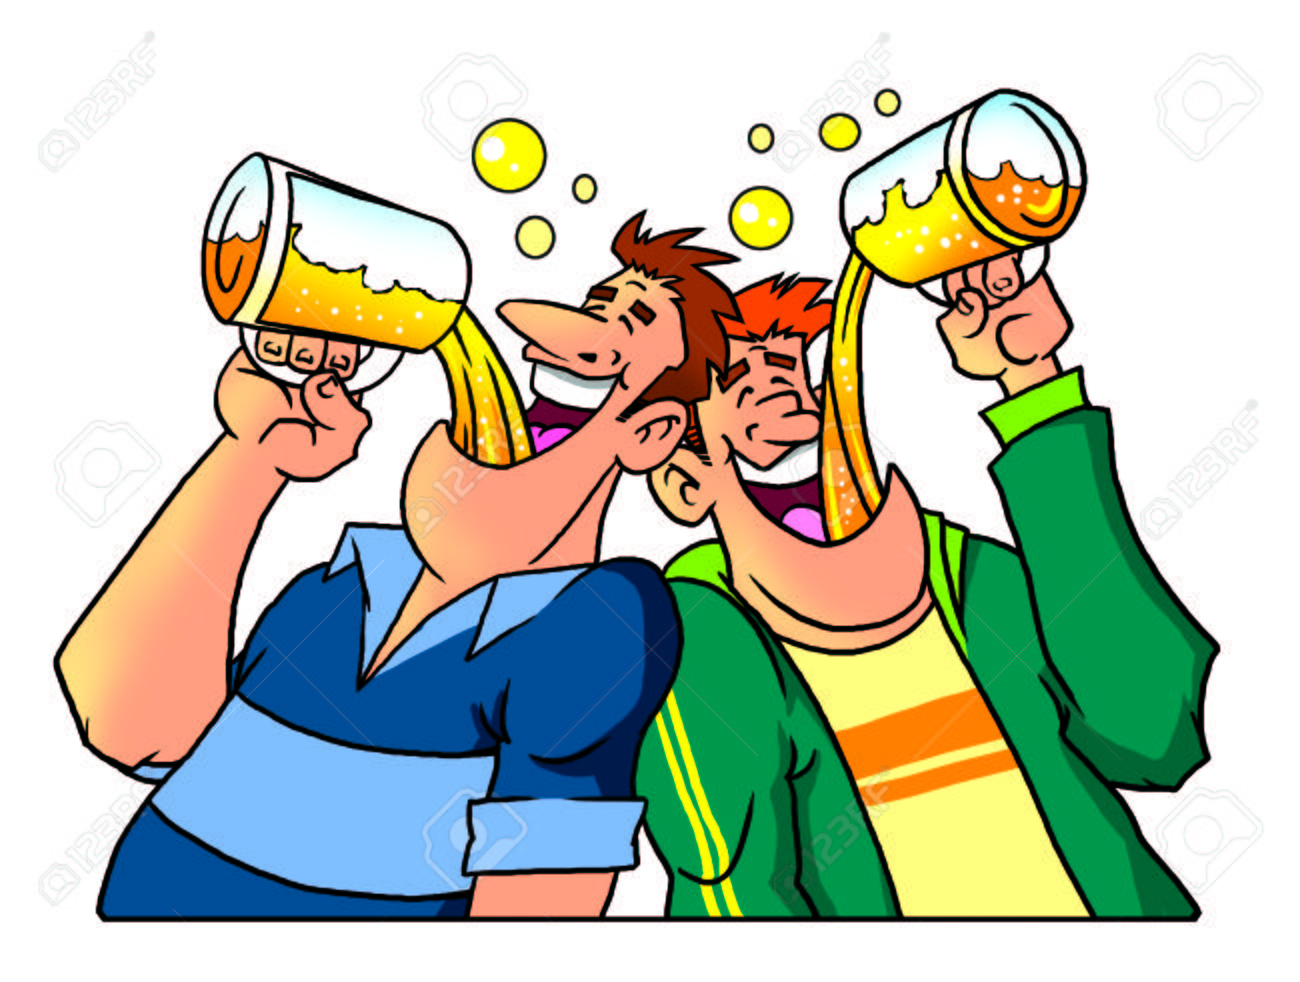 Image result for beer drinking cartoon pictures